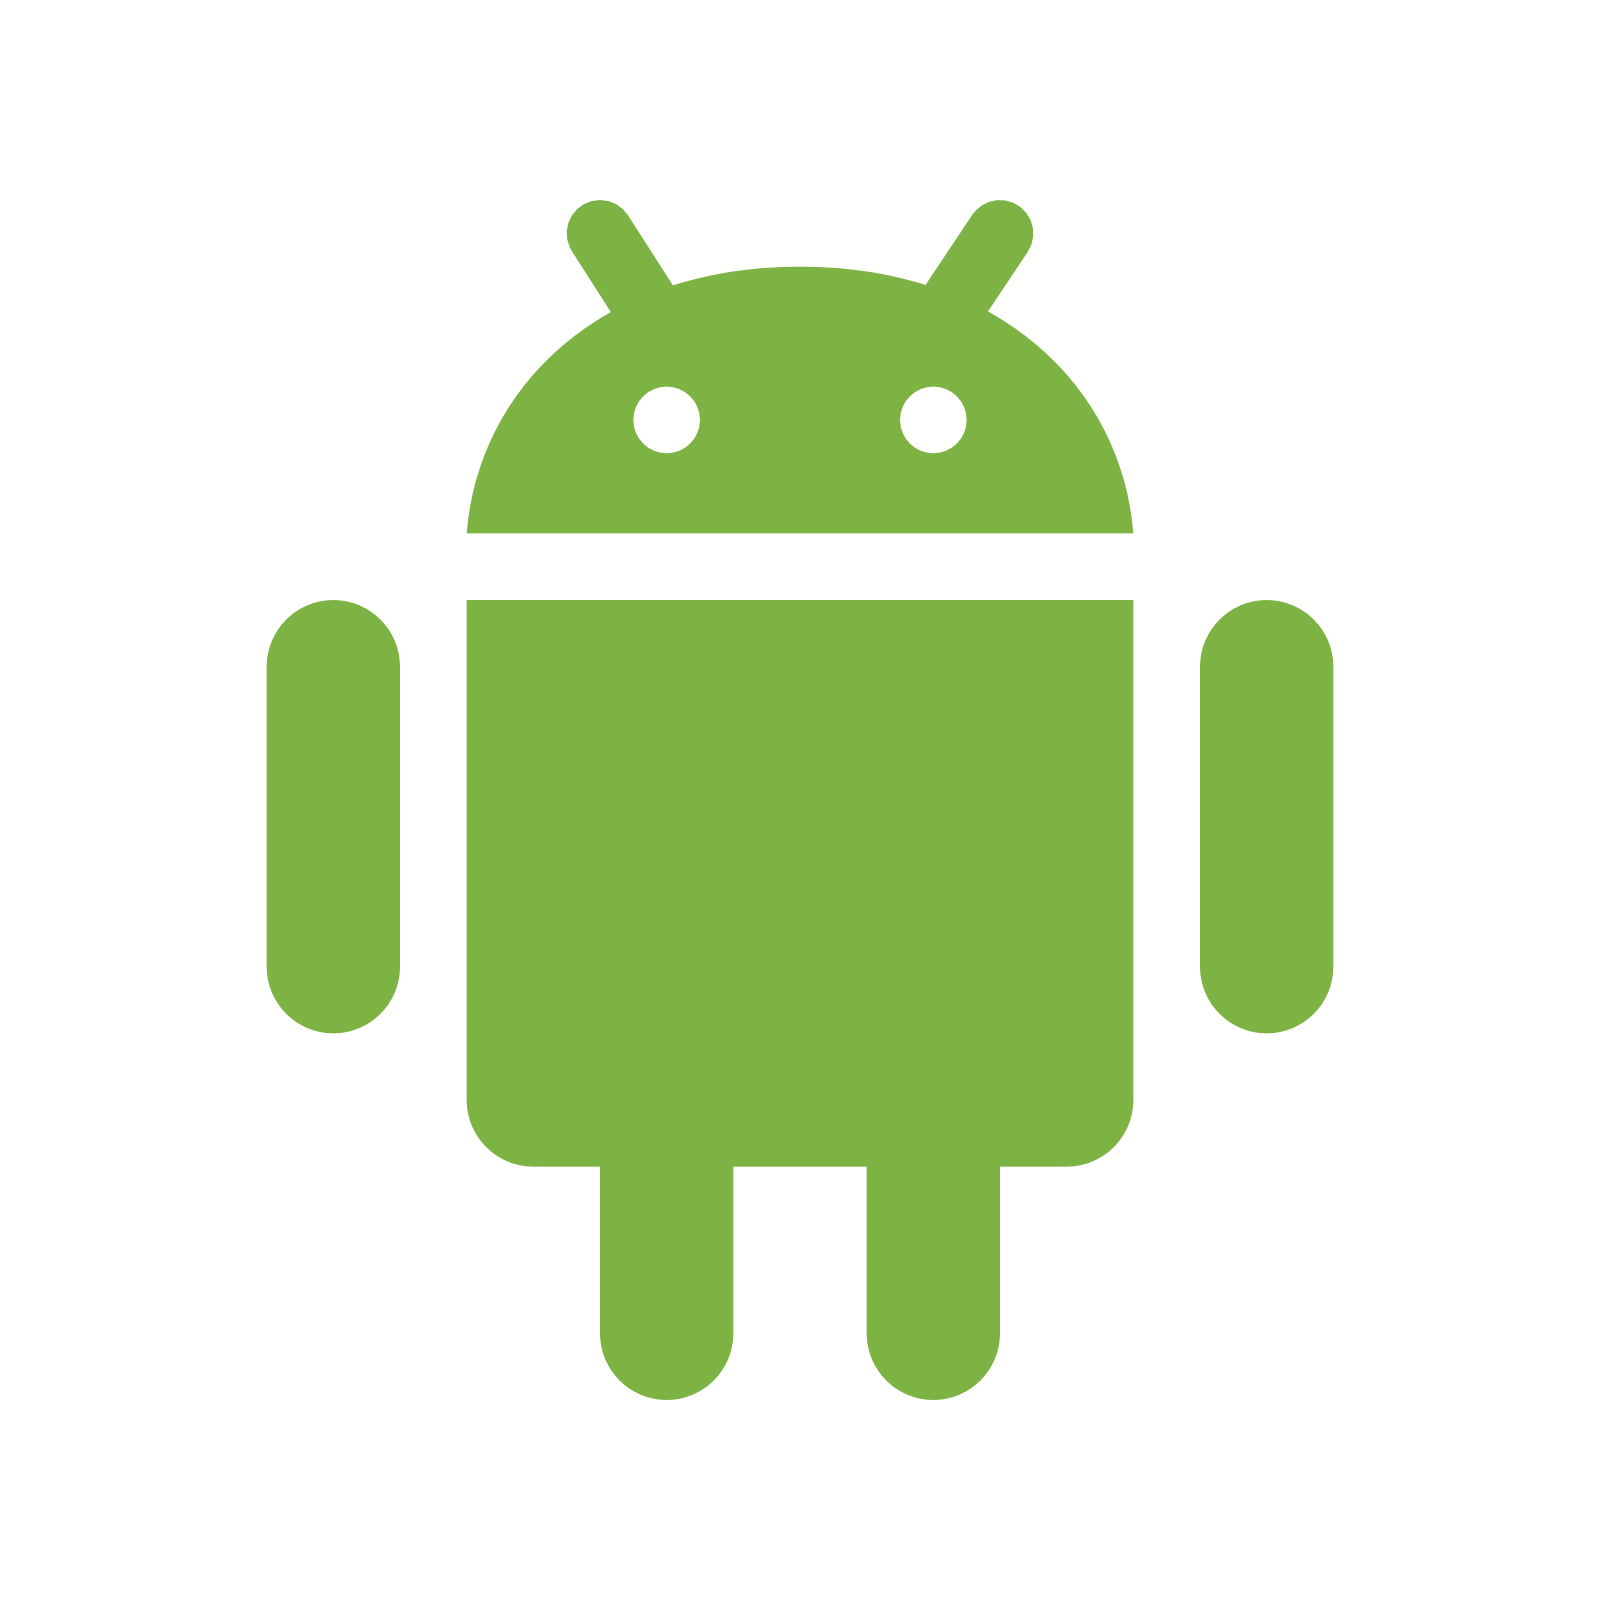 Android icons png free download. Icon transparent background check